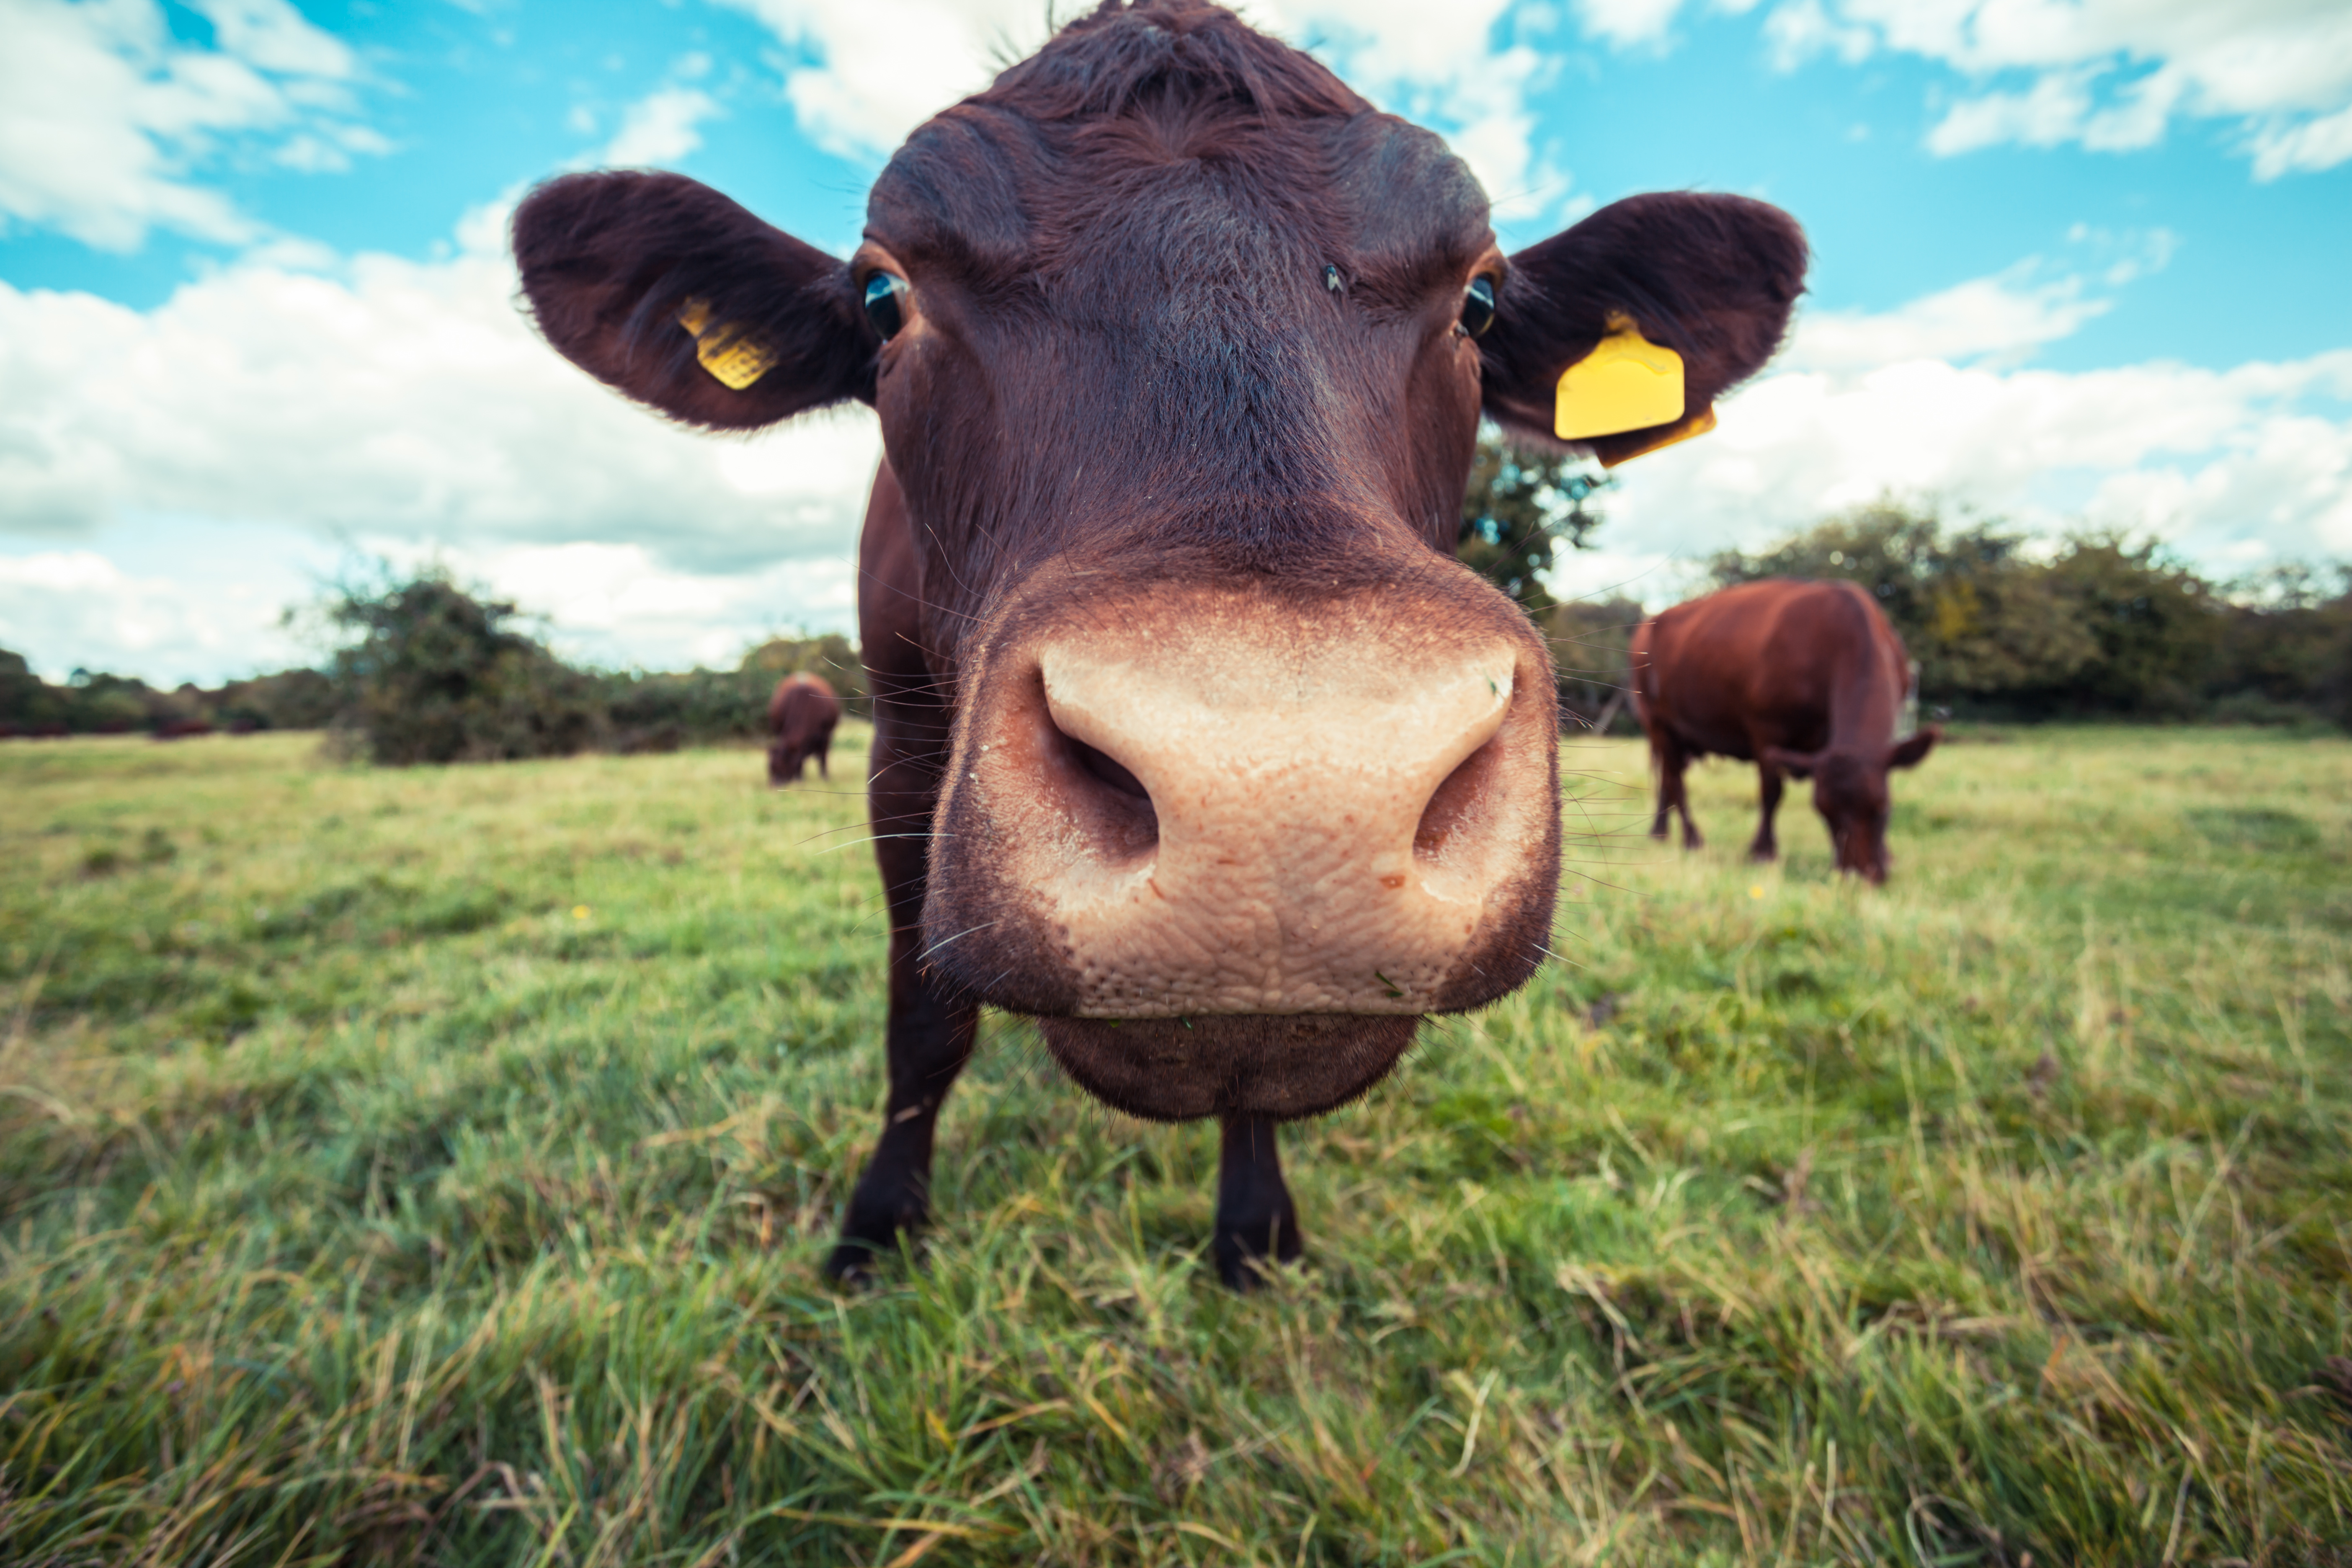 Close up of a brown cow standing in a field